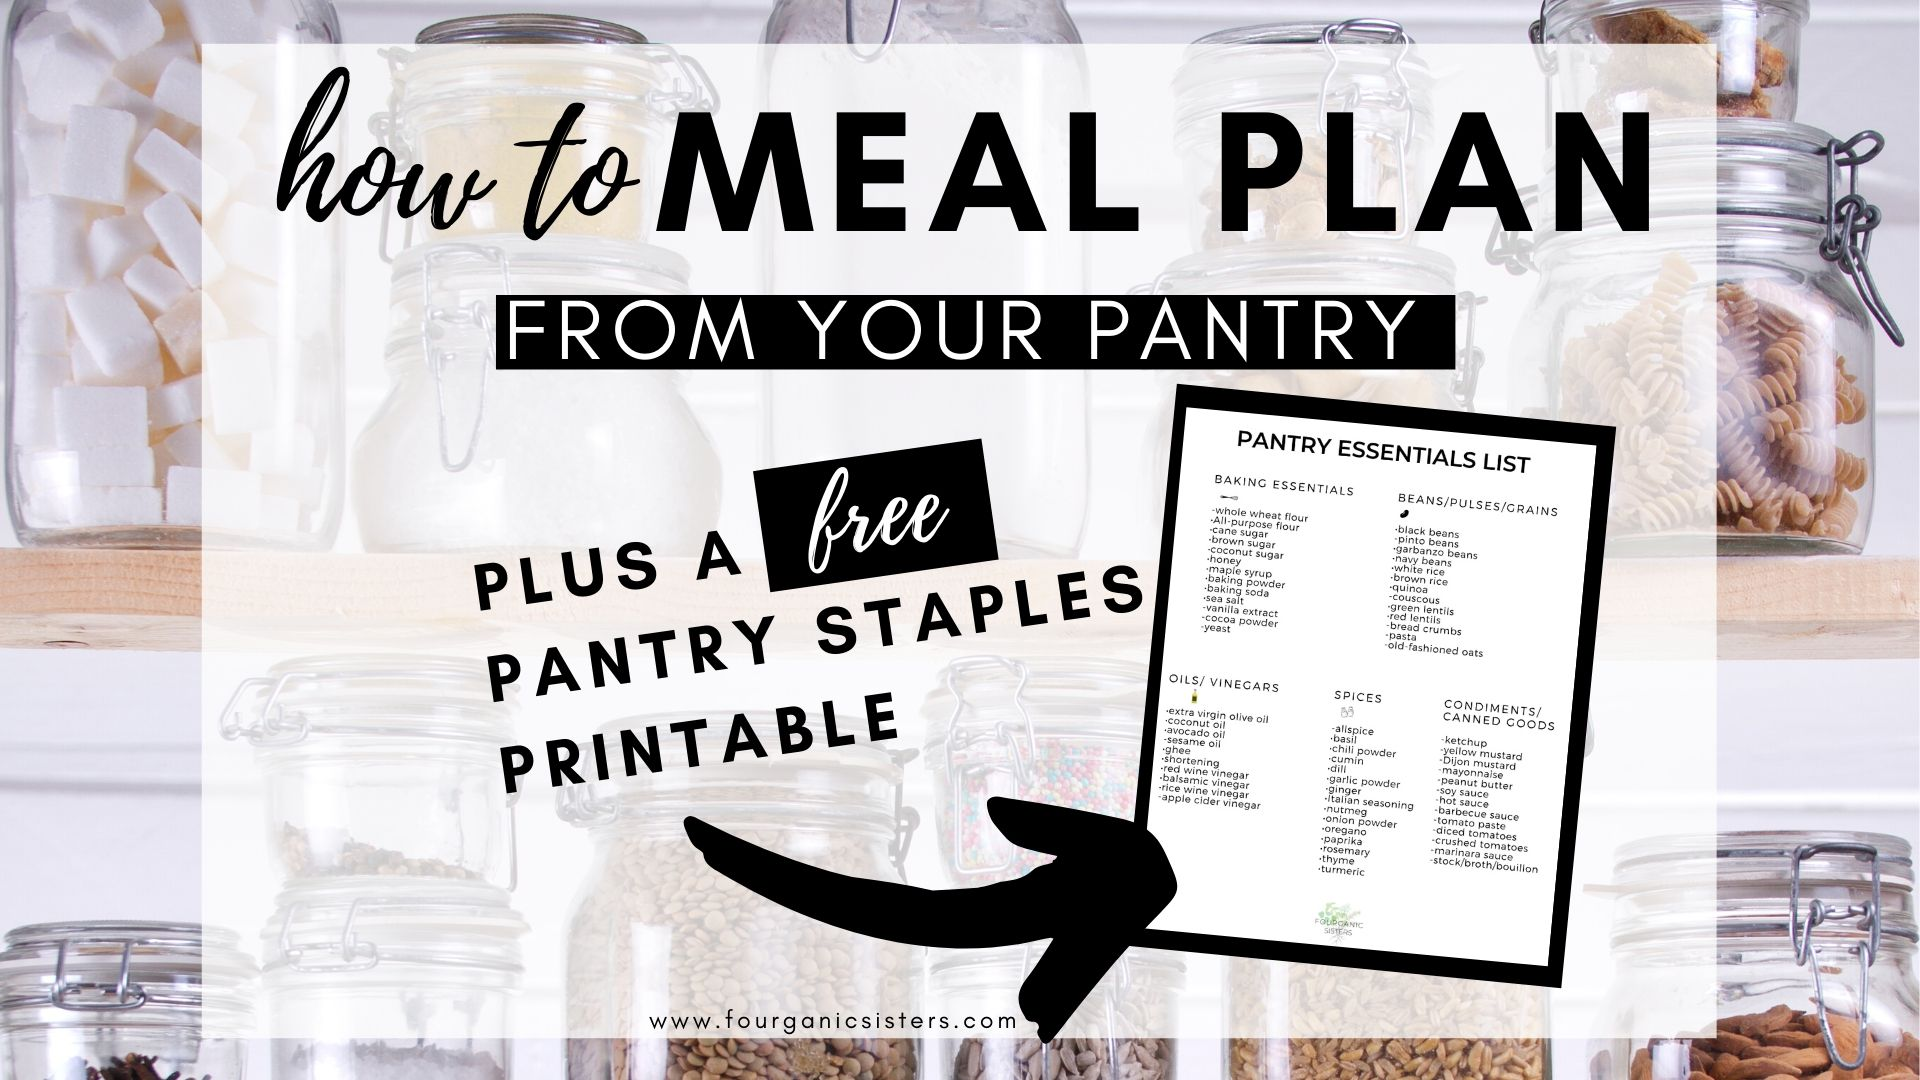 How to Meal Plan from Your Pantry | Fourganic Sisters